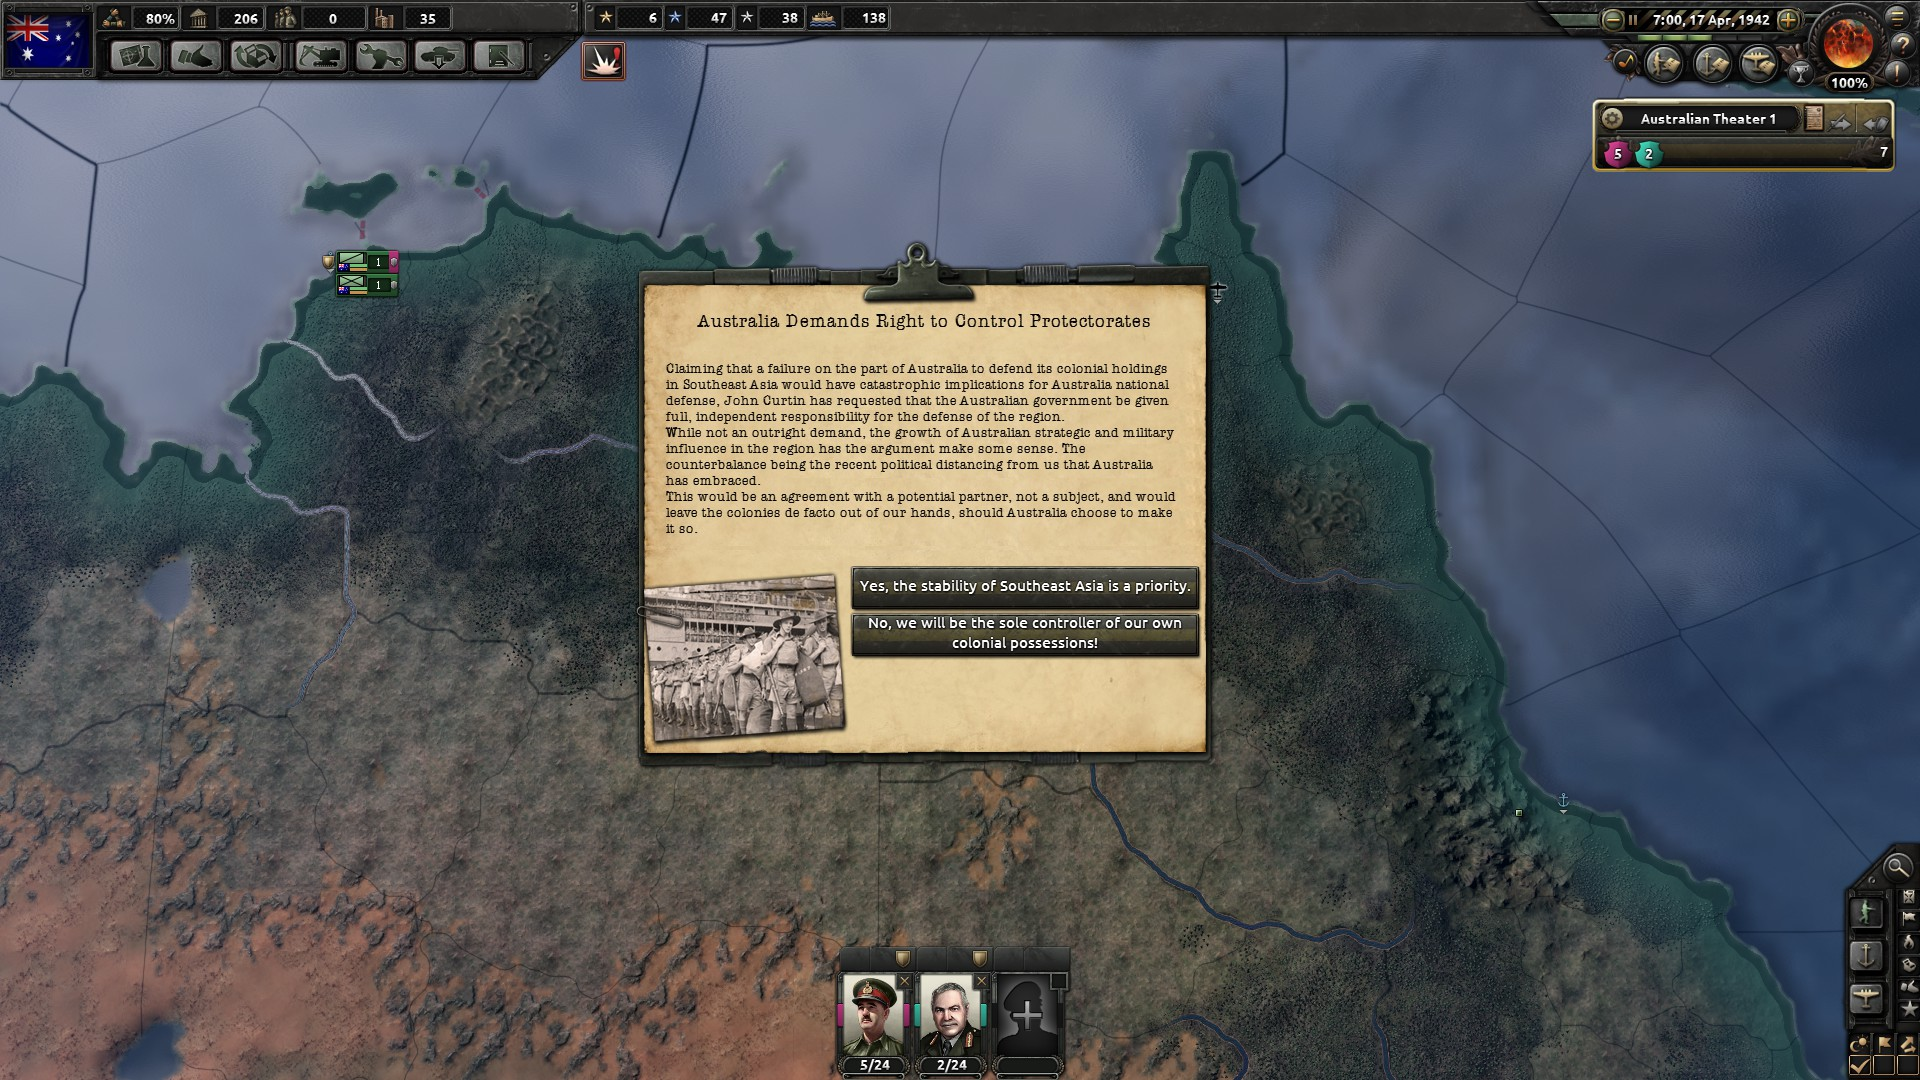 ArchWarhammer - Official Game Store - Hearts of Iron IV